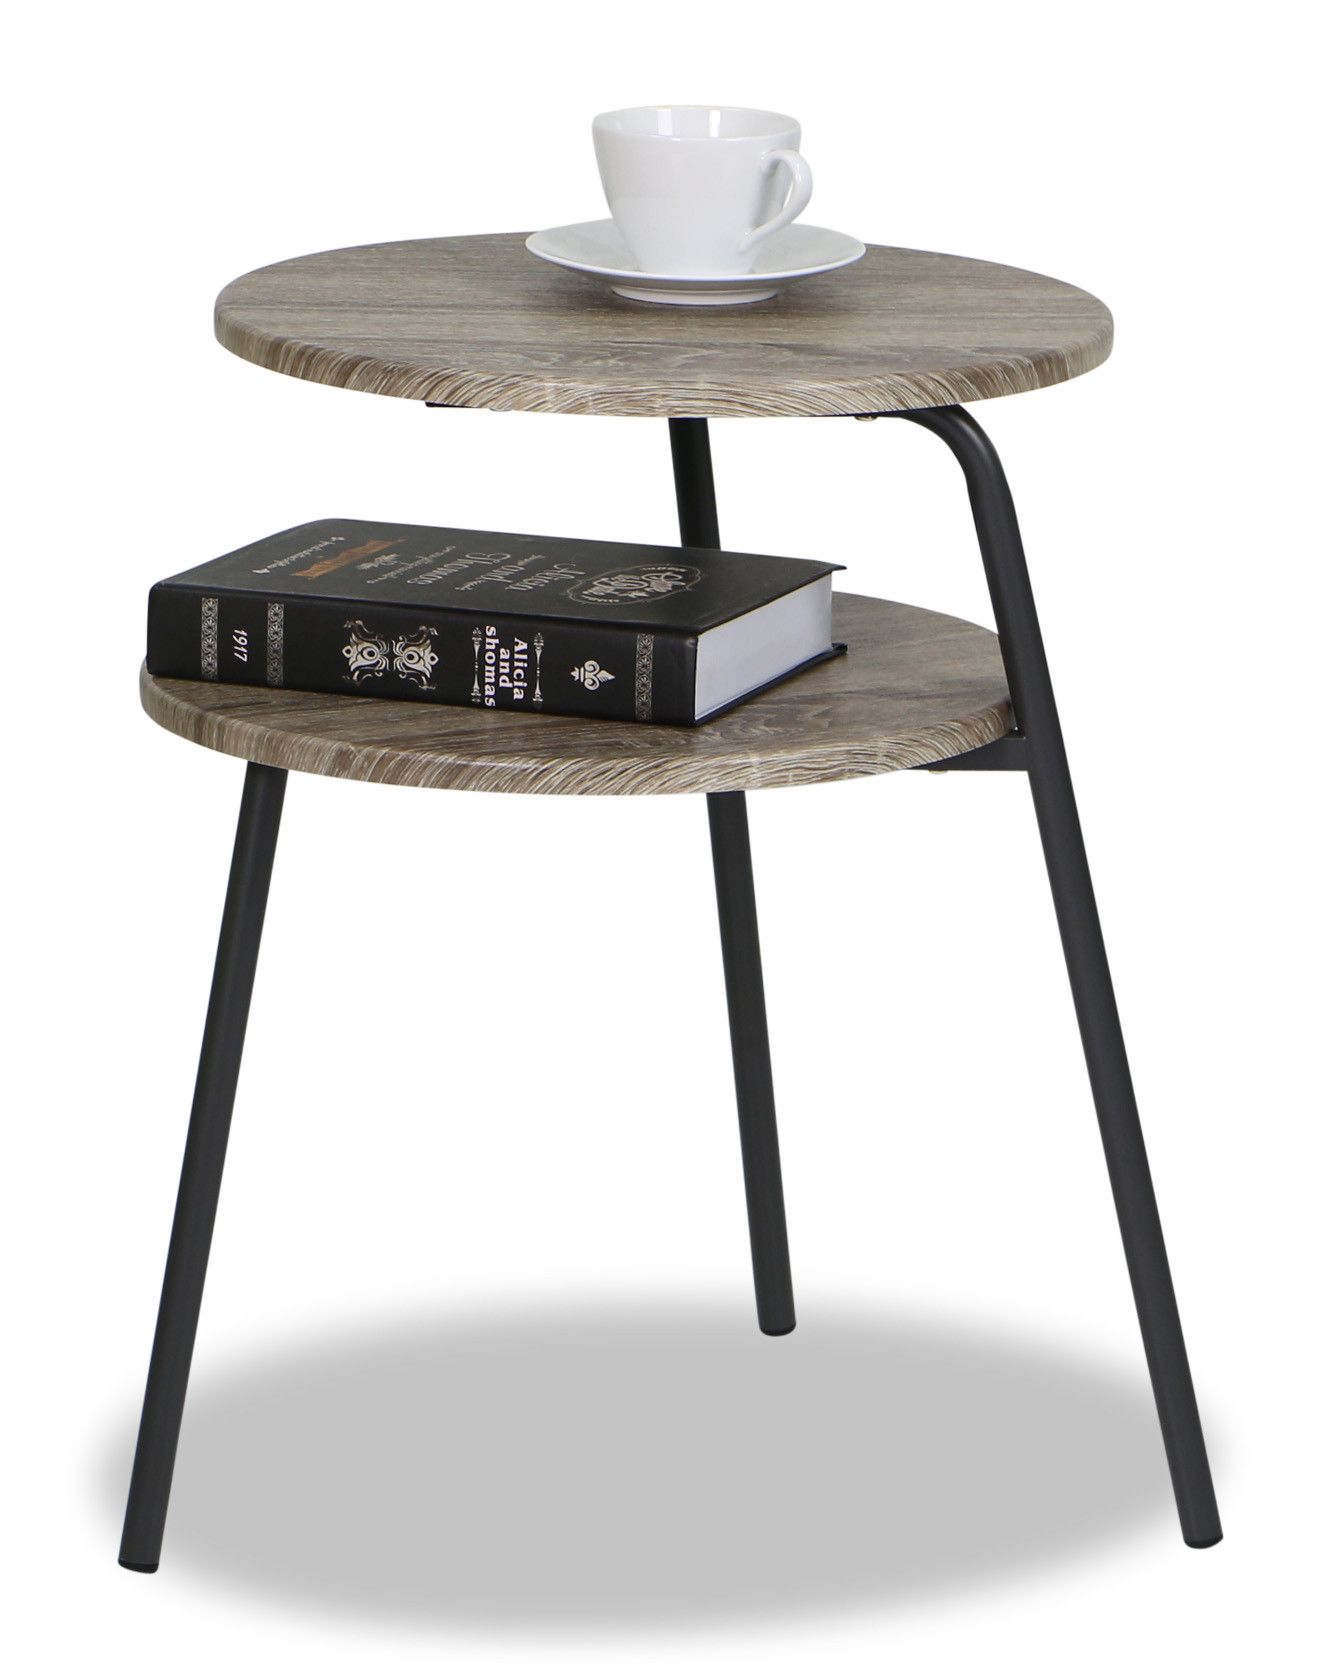 Ordinaire Dossi Double Deck Side Table In Sonoma Oak